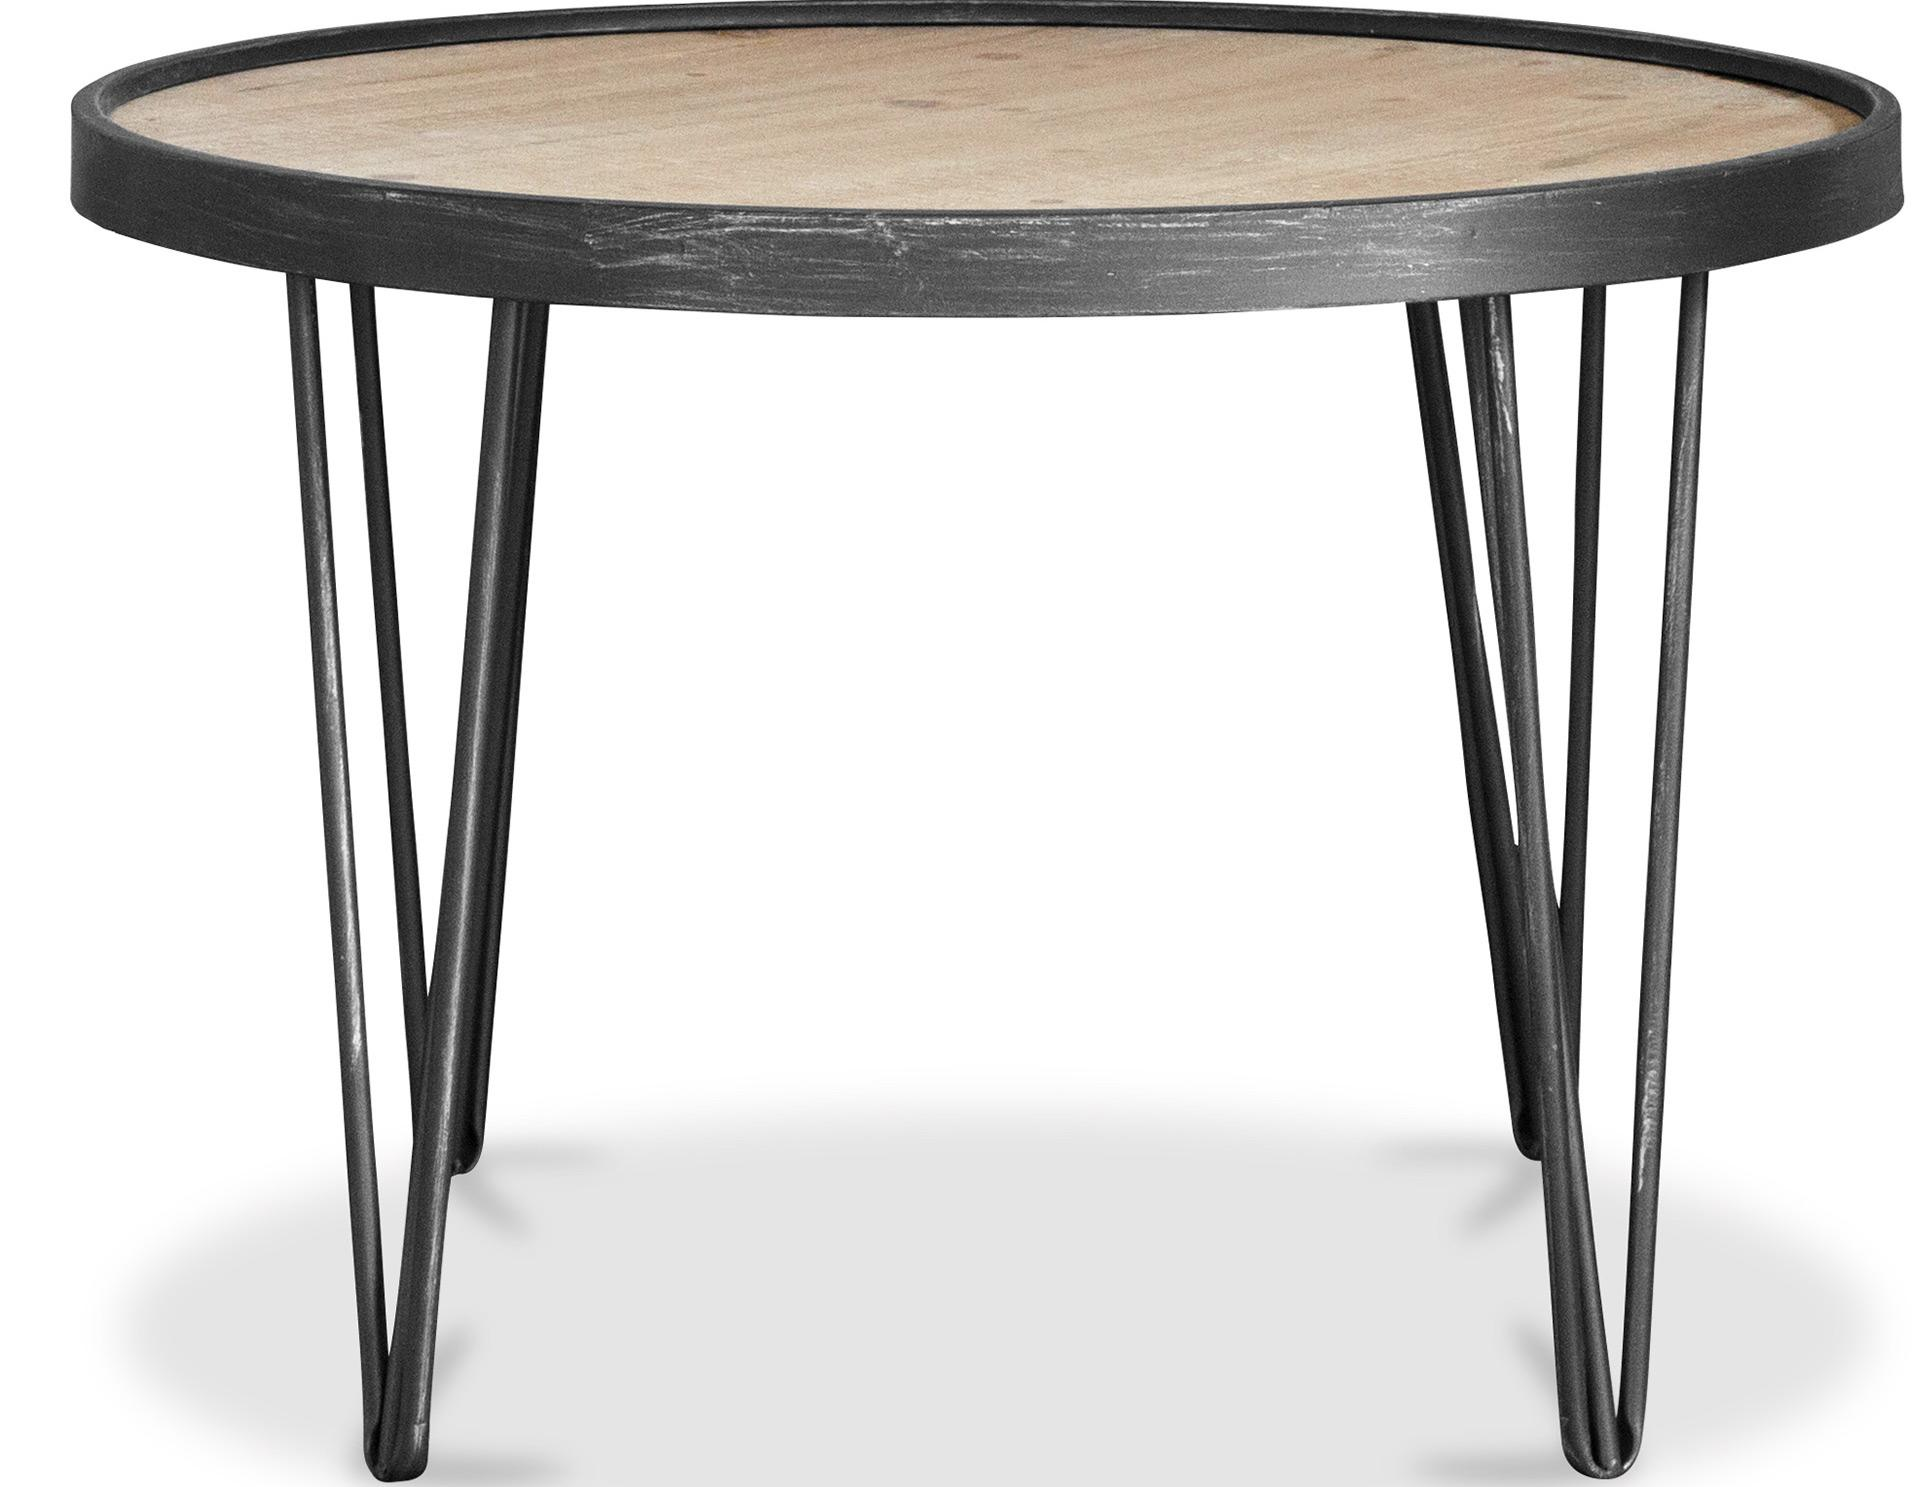 Table basse ronde bois massif et m tal noir kolin for Table ronde bois metal